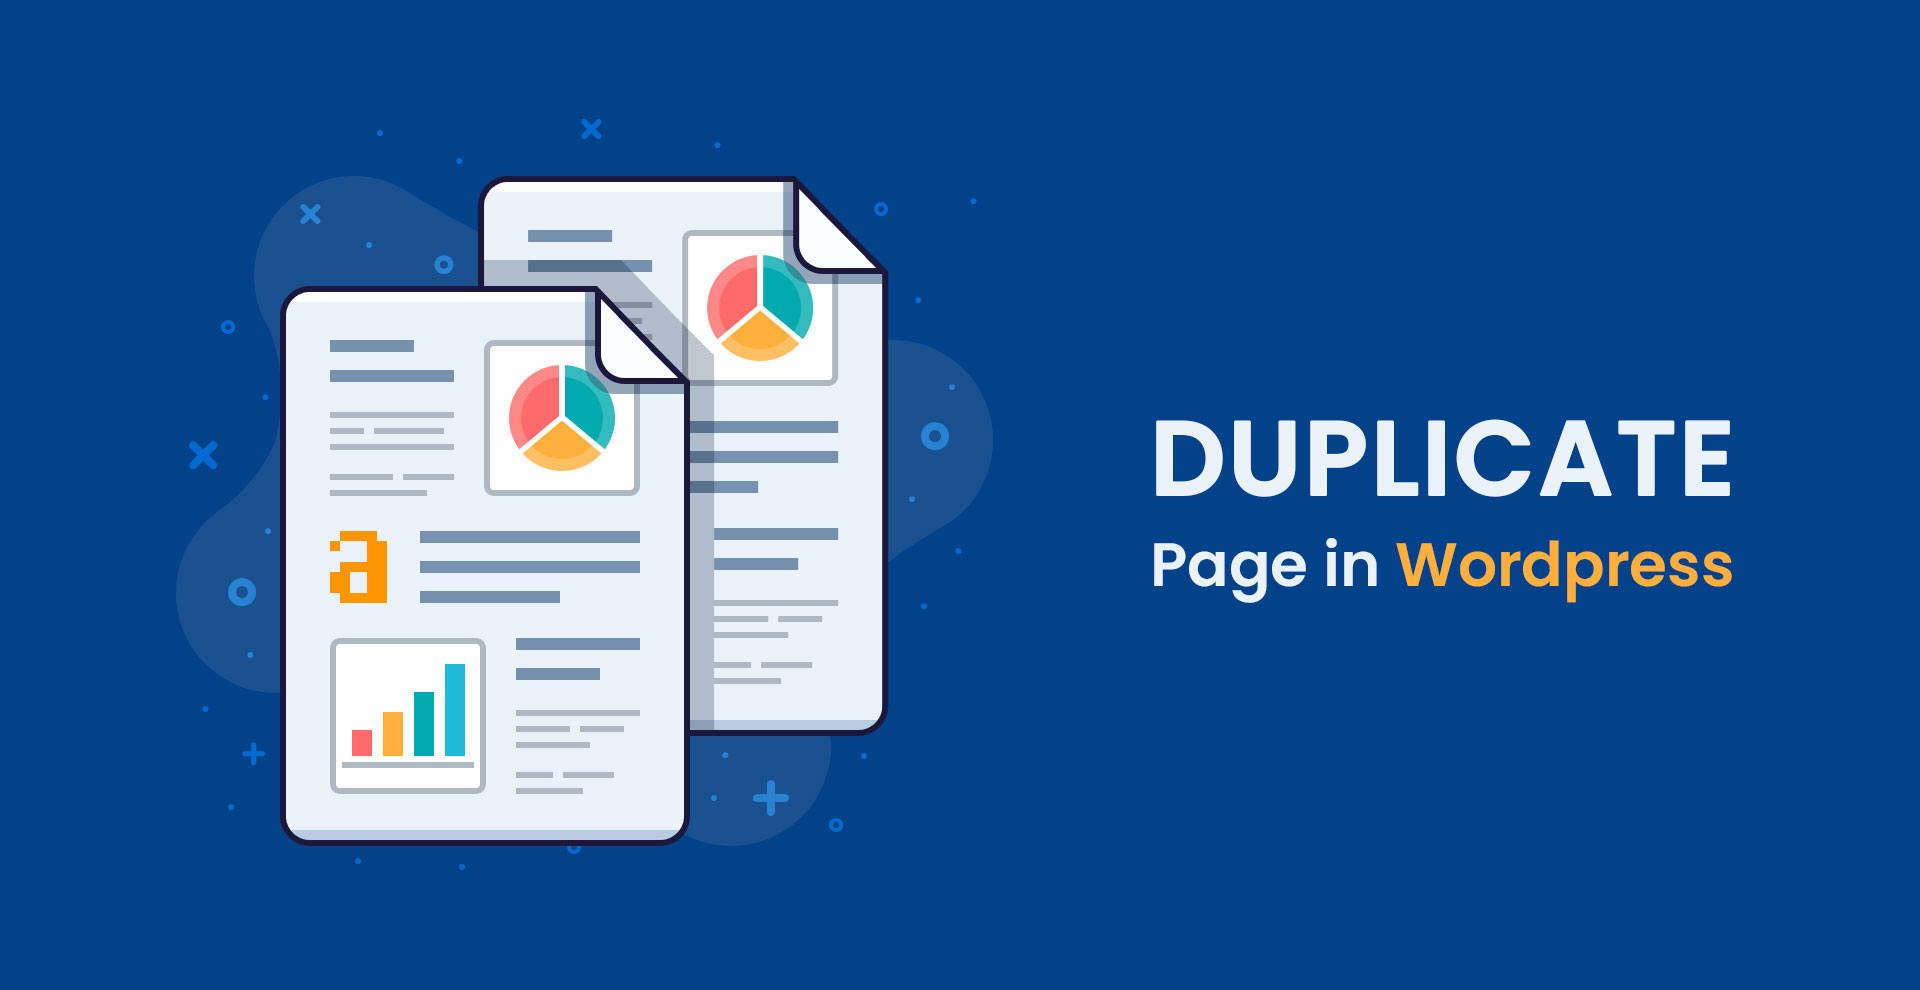 Duplicate page in WordPress